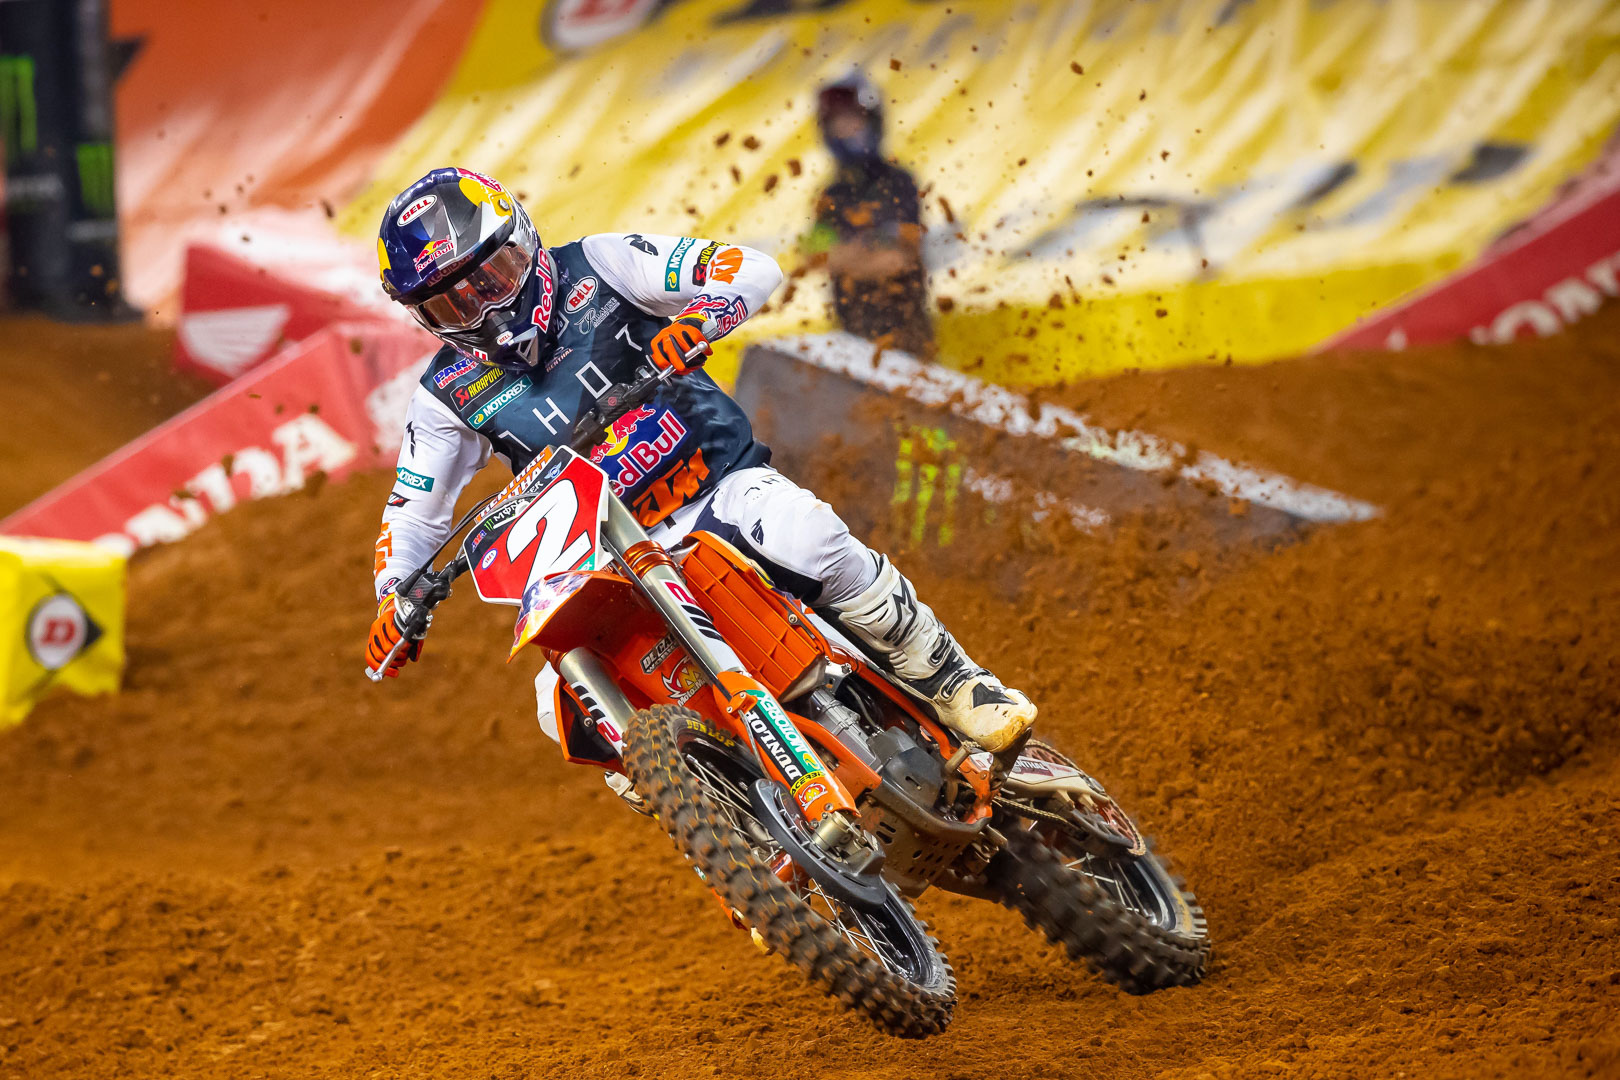 2021 Arlington 3 Supercross Fantasy Tips and Picks: Cooper Webb